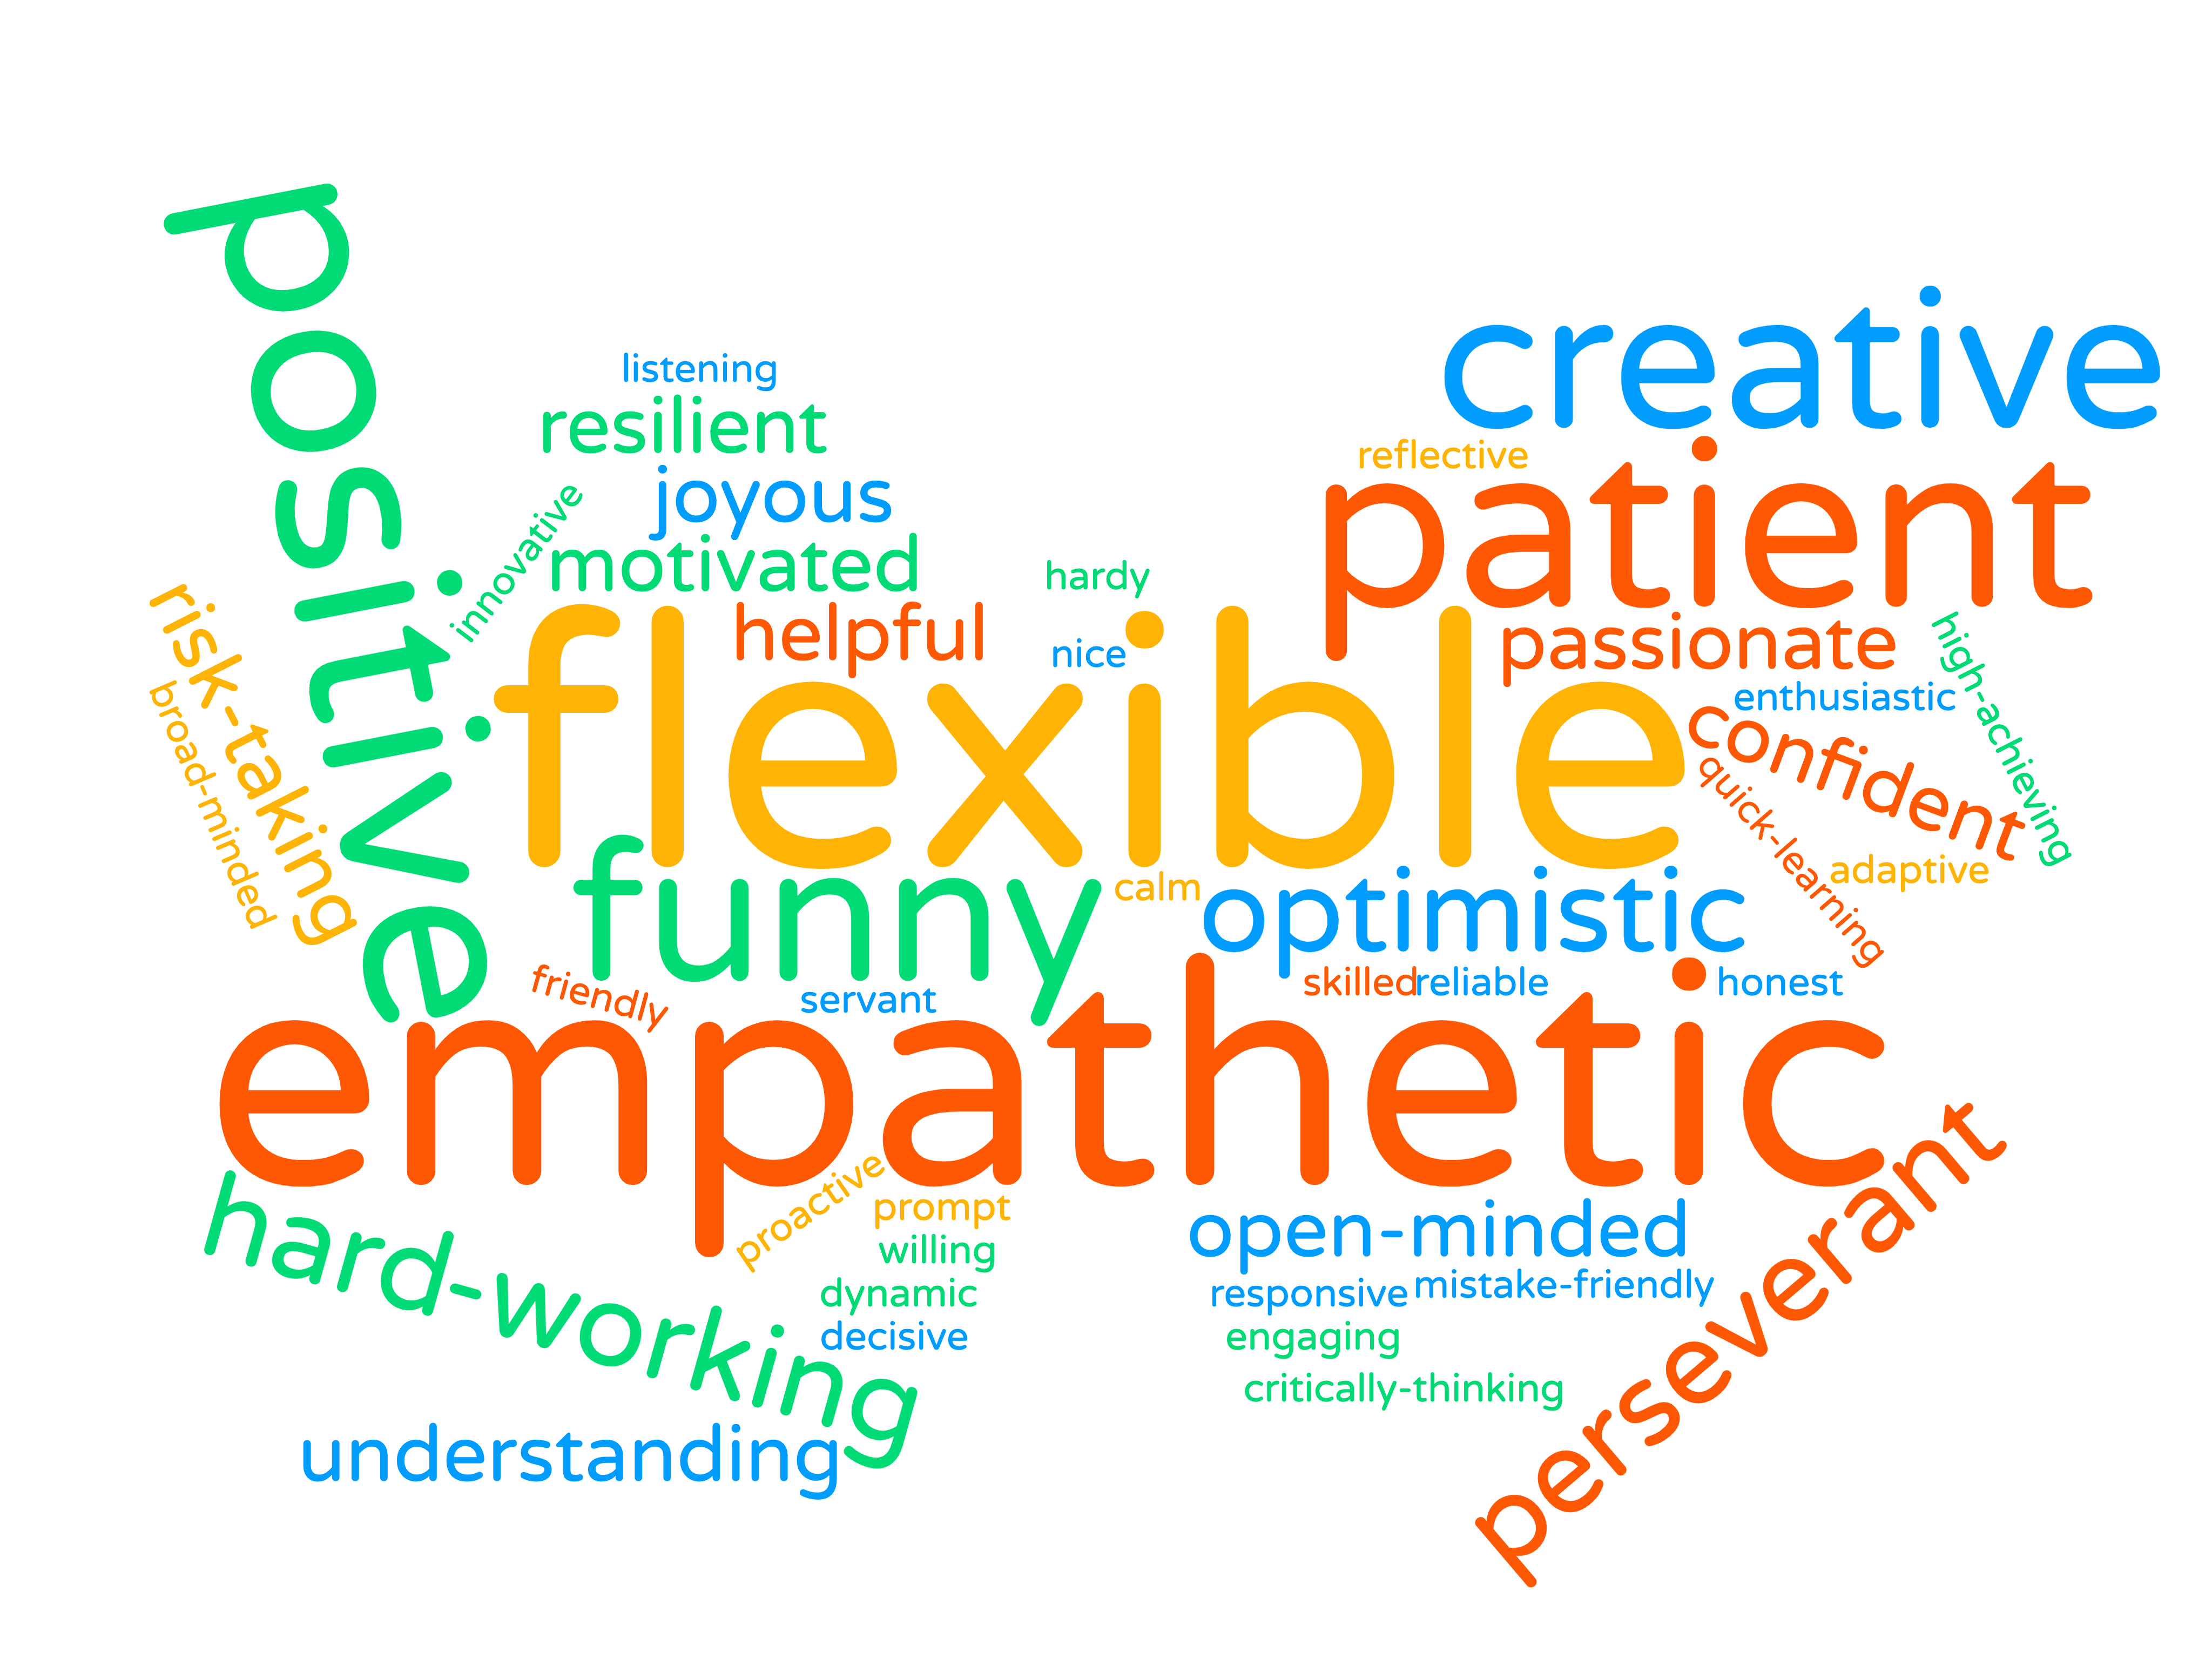 20-21 Our Qualities Word Cloud